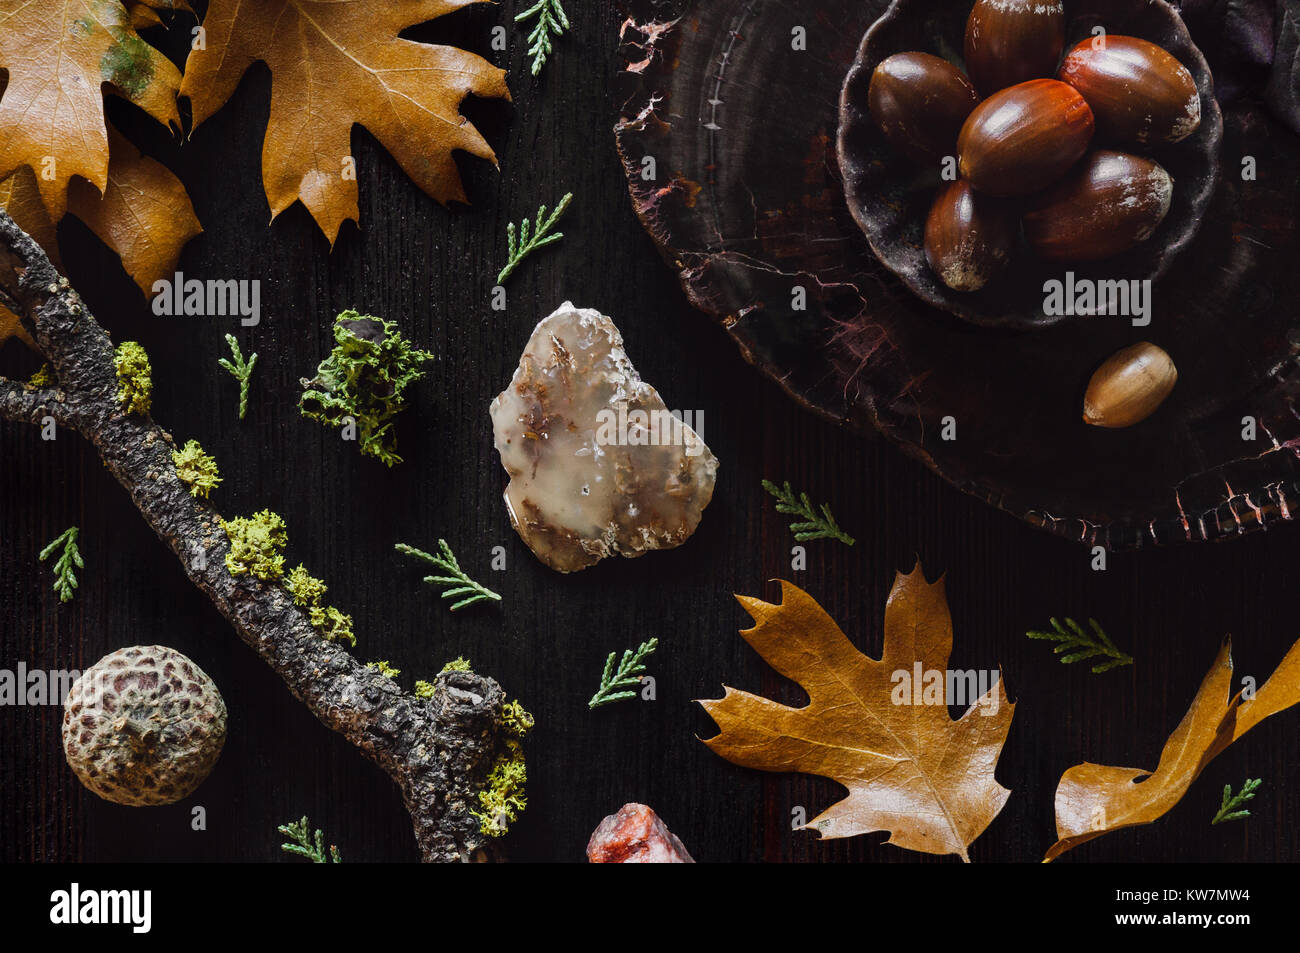 Fall Leaves, Moss, Bark, Agate, Petrified Wood on Dark Table - Stock Image